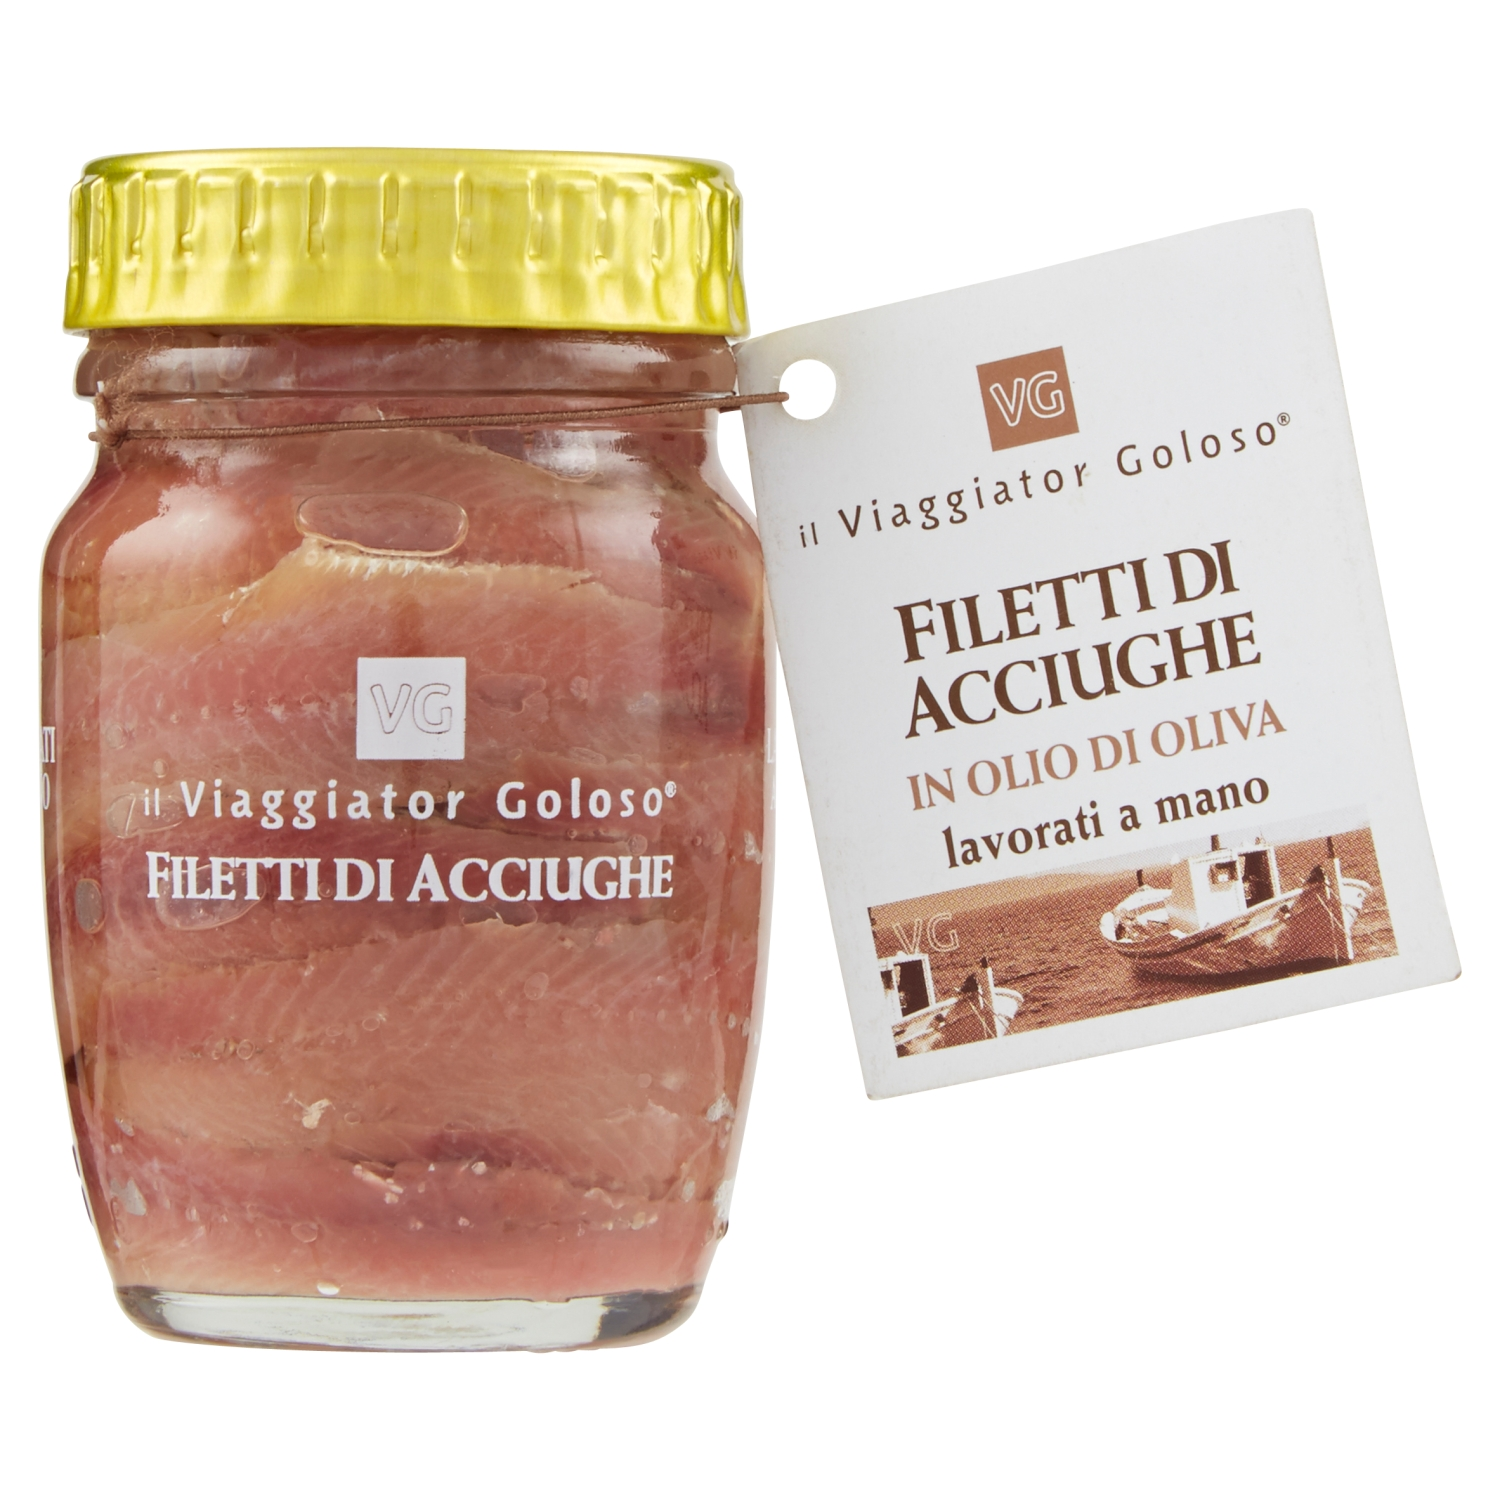 Filetti di acciughe 90g